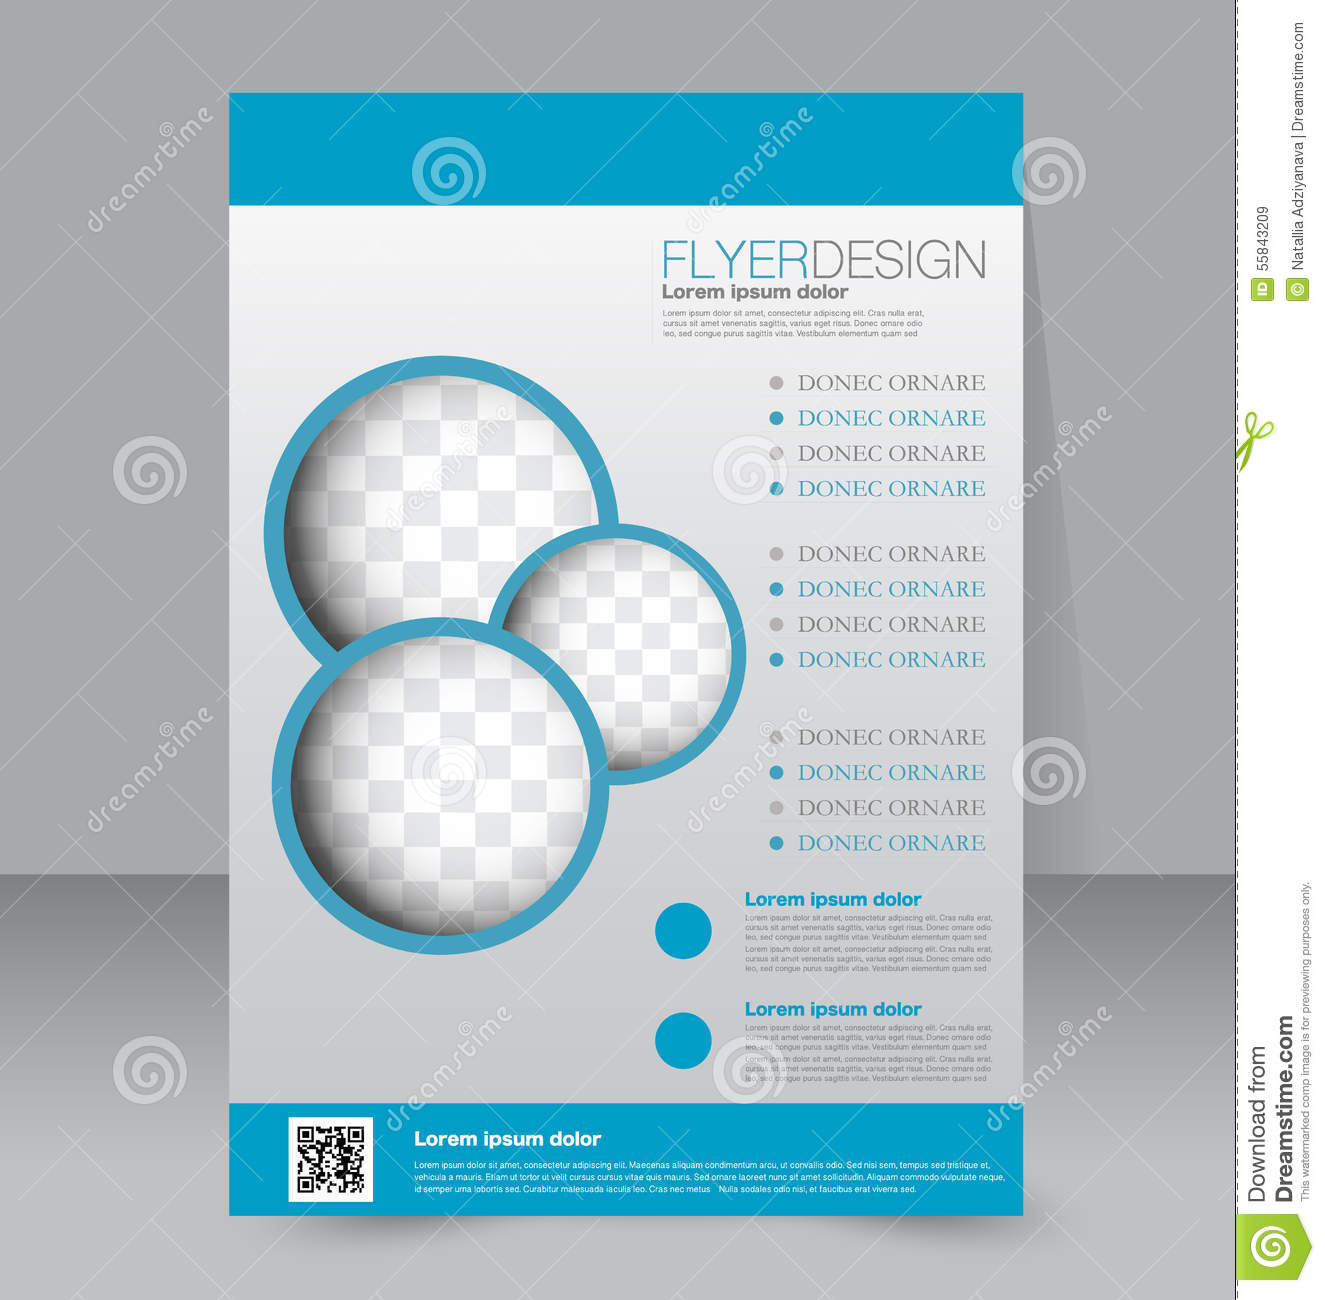 flyer template business brochure editable a poster stock vector flyer template business brochure editable a4 poster